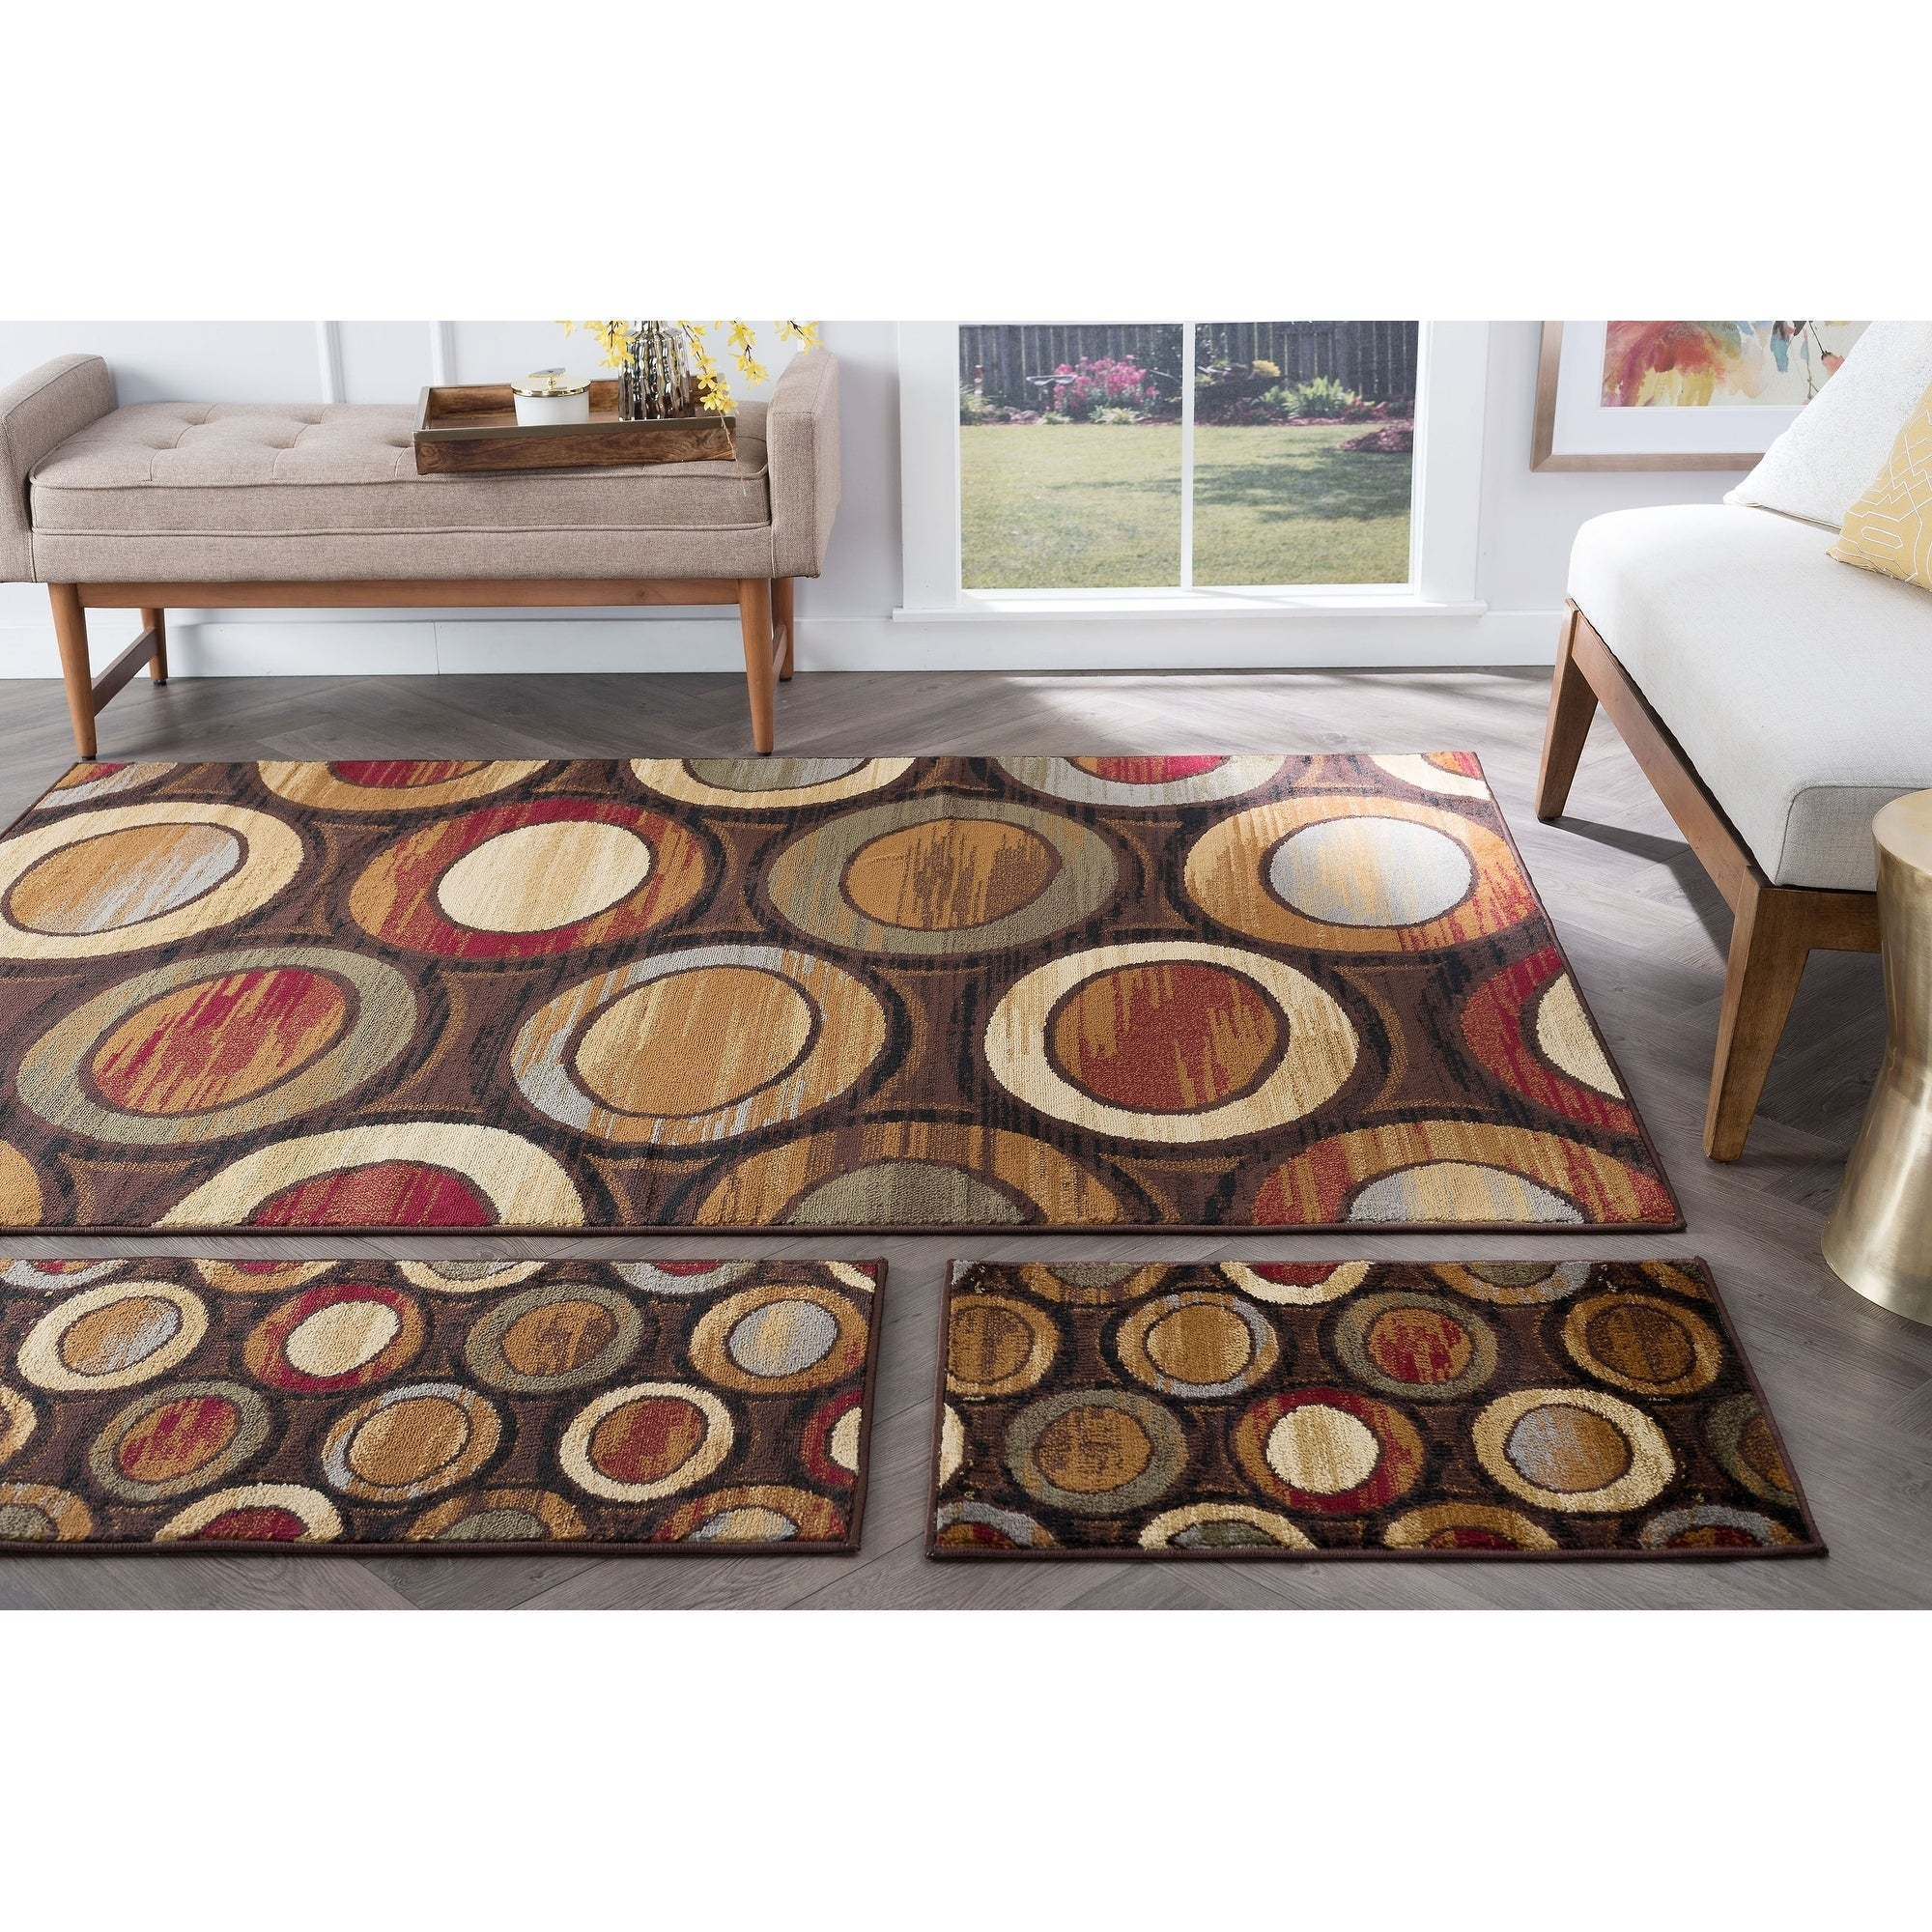 Alise Rugs Rhythm Contemporary Geometric Three Piece Set - multi - 5 x 7 (5 x 7 - Moderate Traffic)